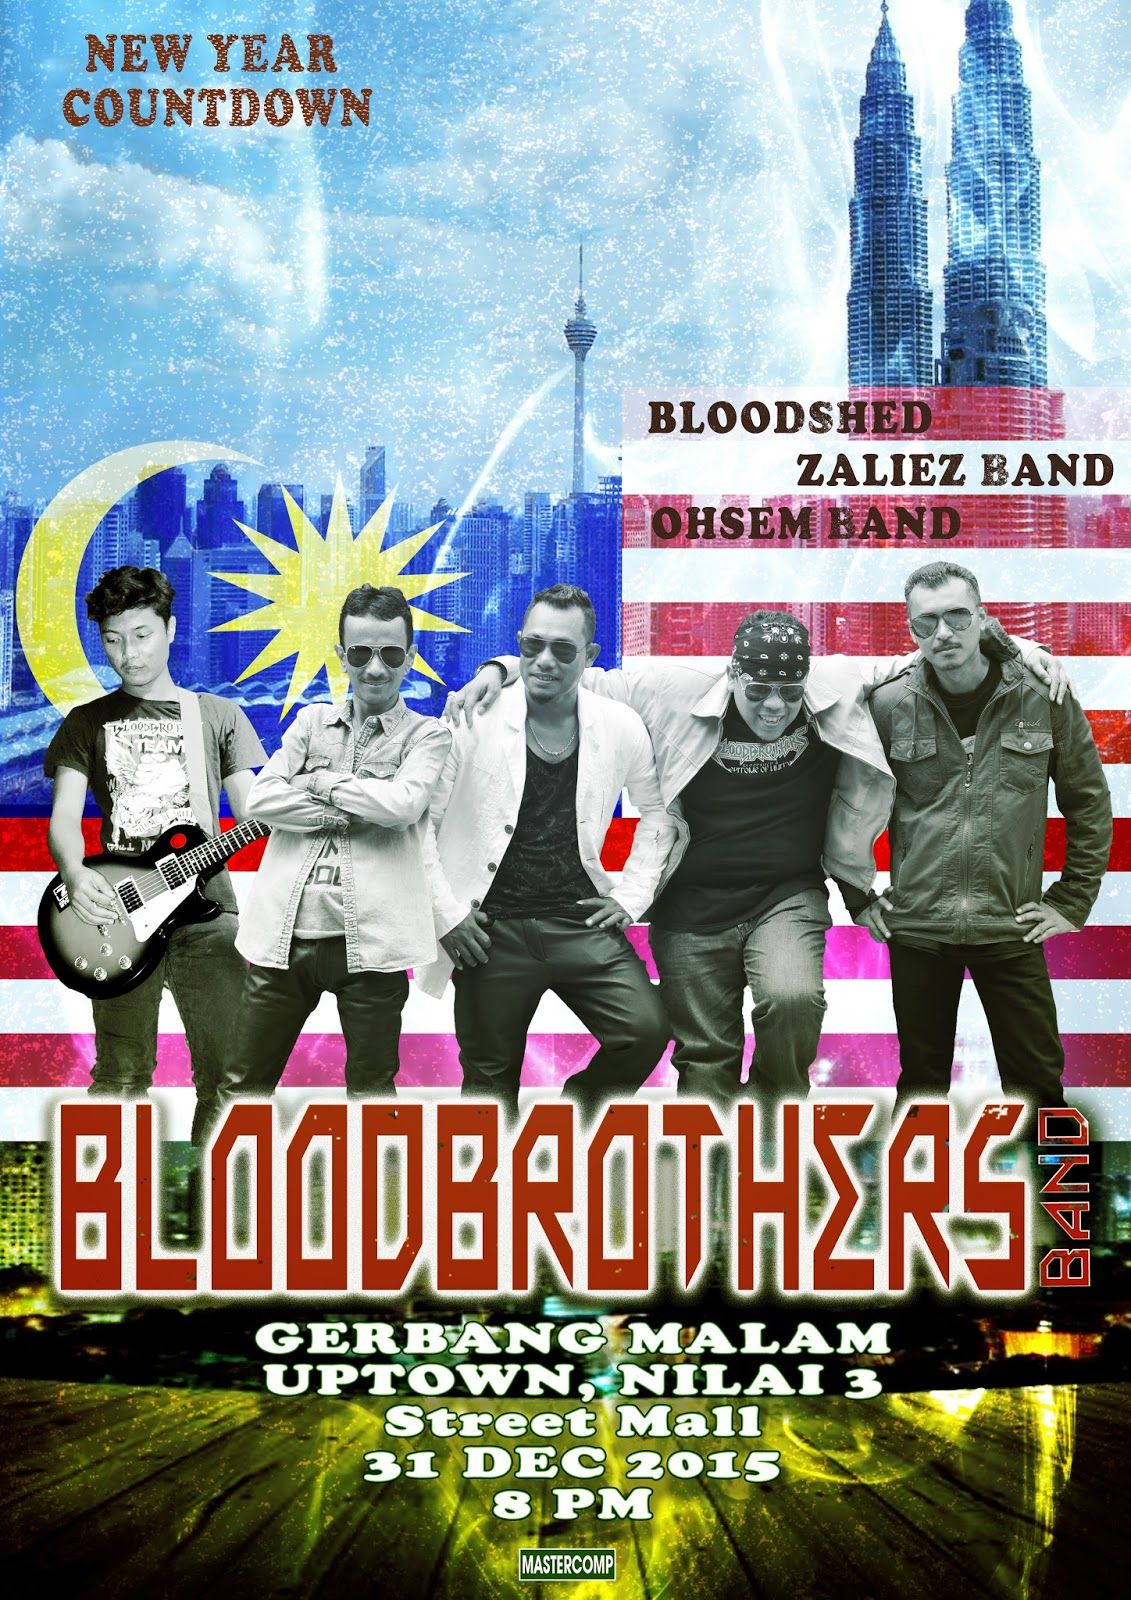 Event Bloodbrothers at Nilai 3